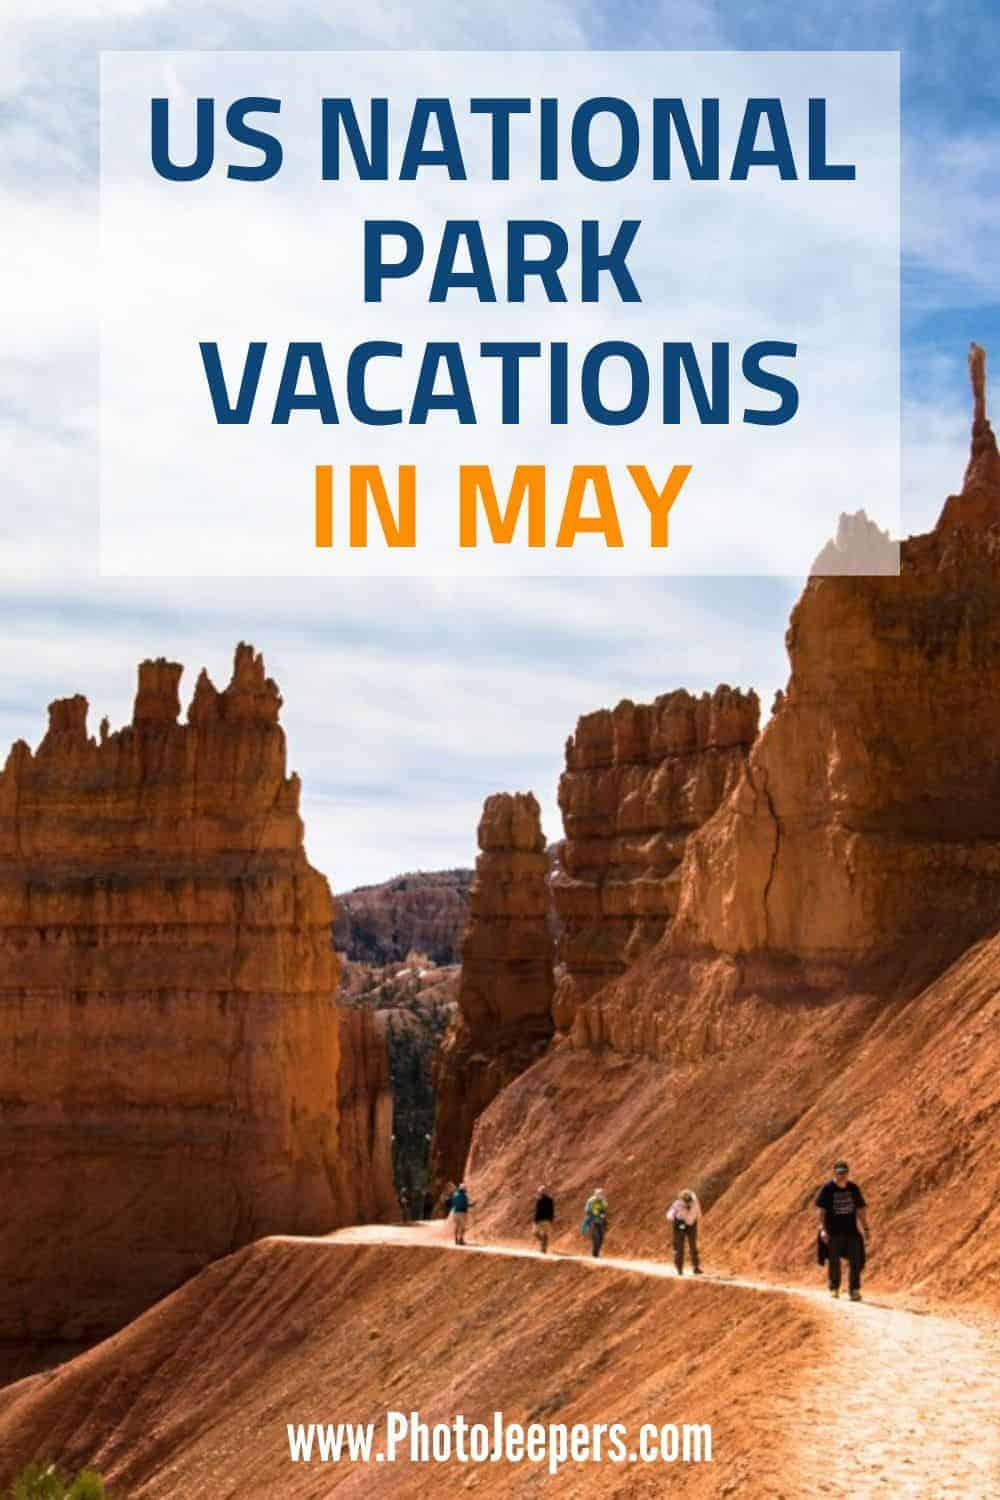 Plan a vacation to any of these US National Parks in May. Enjoy the outdoors, moderate temperatures and beat the summer crowds during the month of May! #nationalparks #usa #vacation #photojeepers